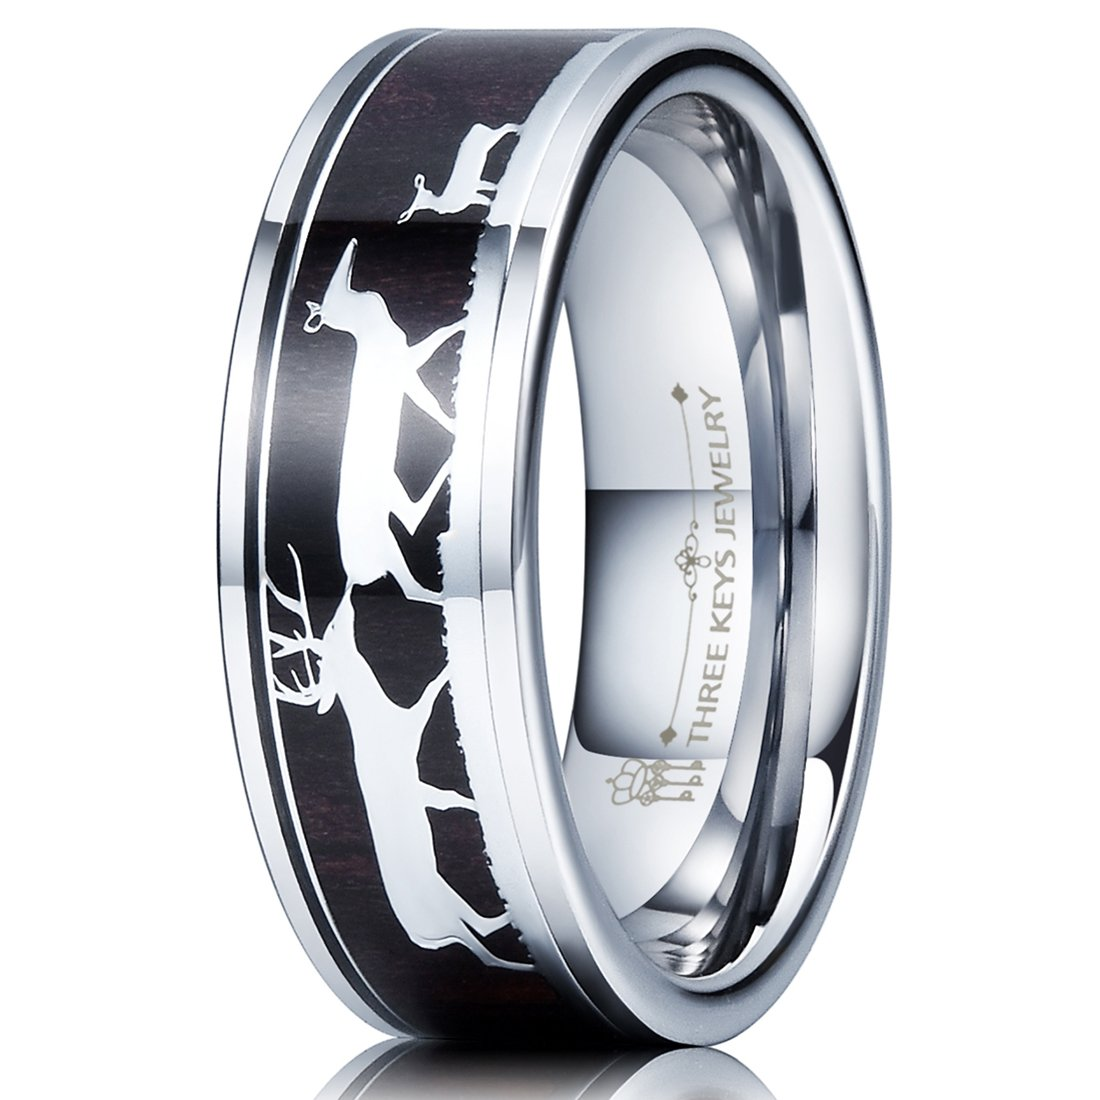 Three Keys Jewelry 8mm Tungsten Wedding Ring with Ebony Black Sandalwood Antler Deer Family Inlay Hunting Ring Wedding Band Engagement Ring Size 9.5 by Three Keys Jewelry (Image #1)